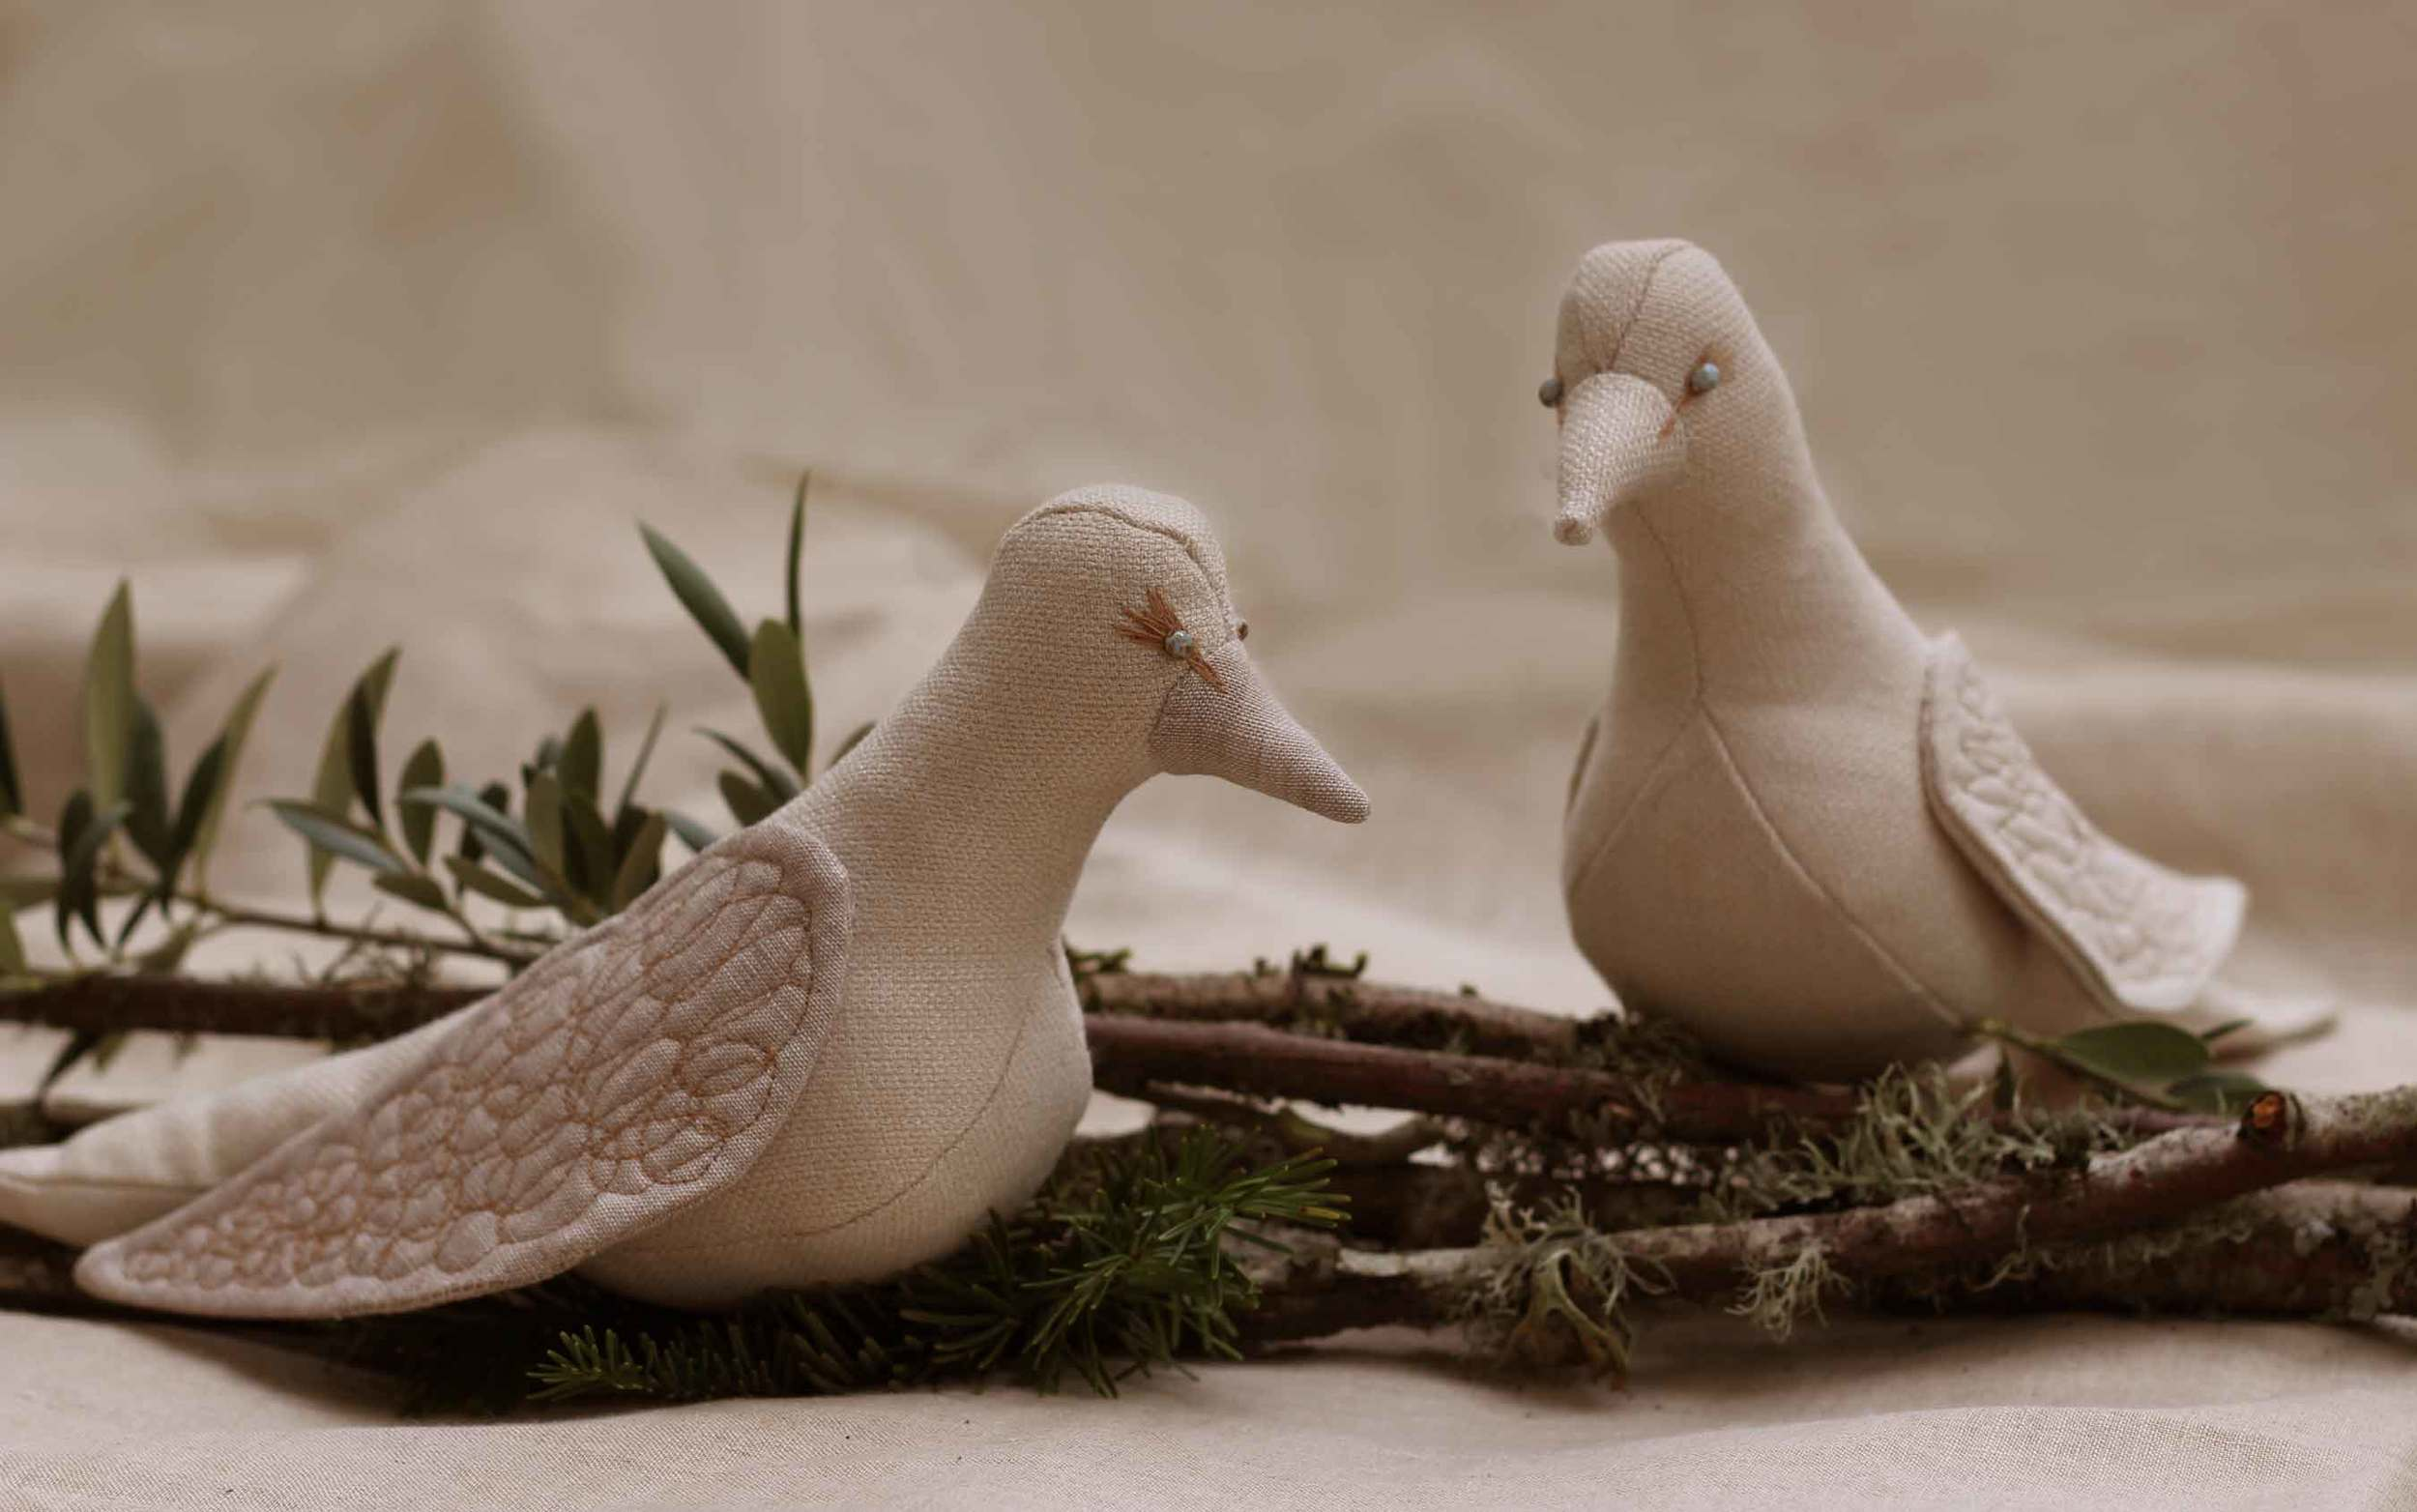 2 handsewn linen doves on a branch, bird softies, design by Thread & Whisk